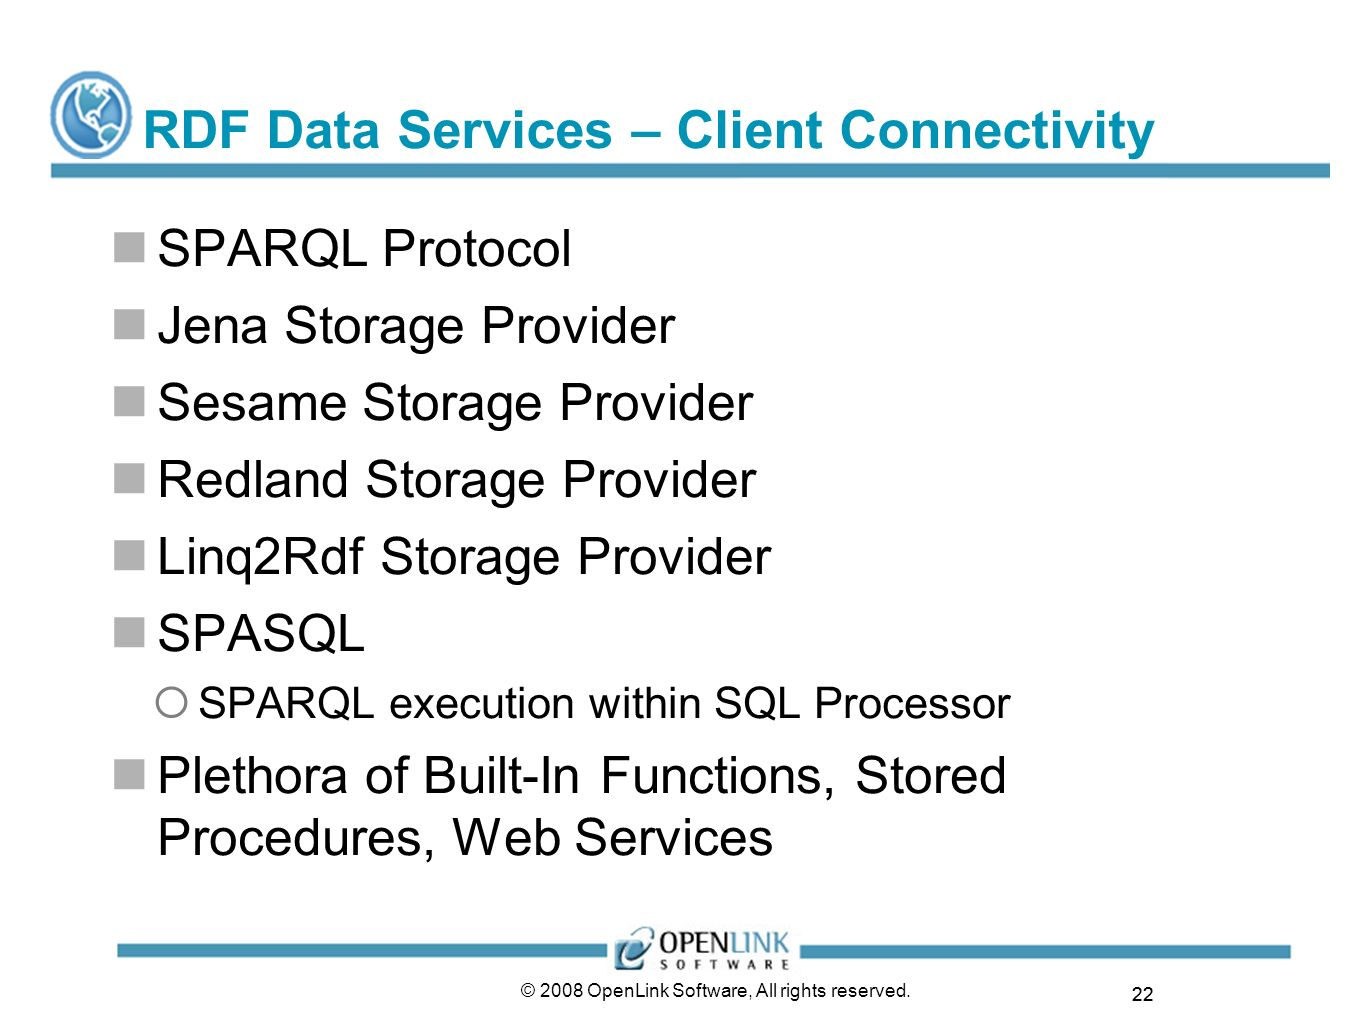 22 © 2008 OpenLink Software, All rights reserved. RDF Data Services – Client Connectivity SPARQL Protocol Jena Storage Provider Sesame Storage Provide